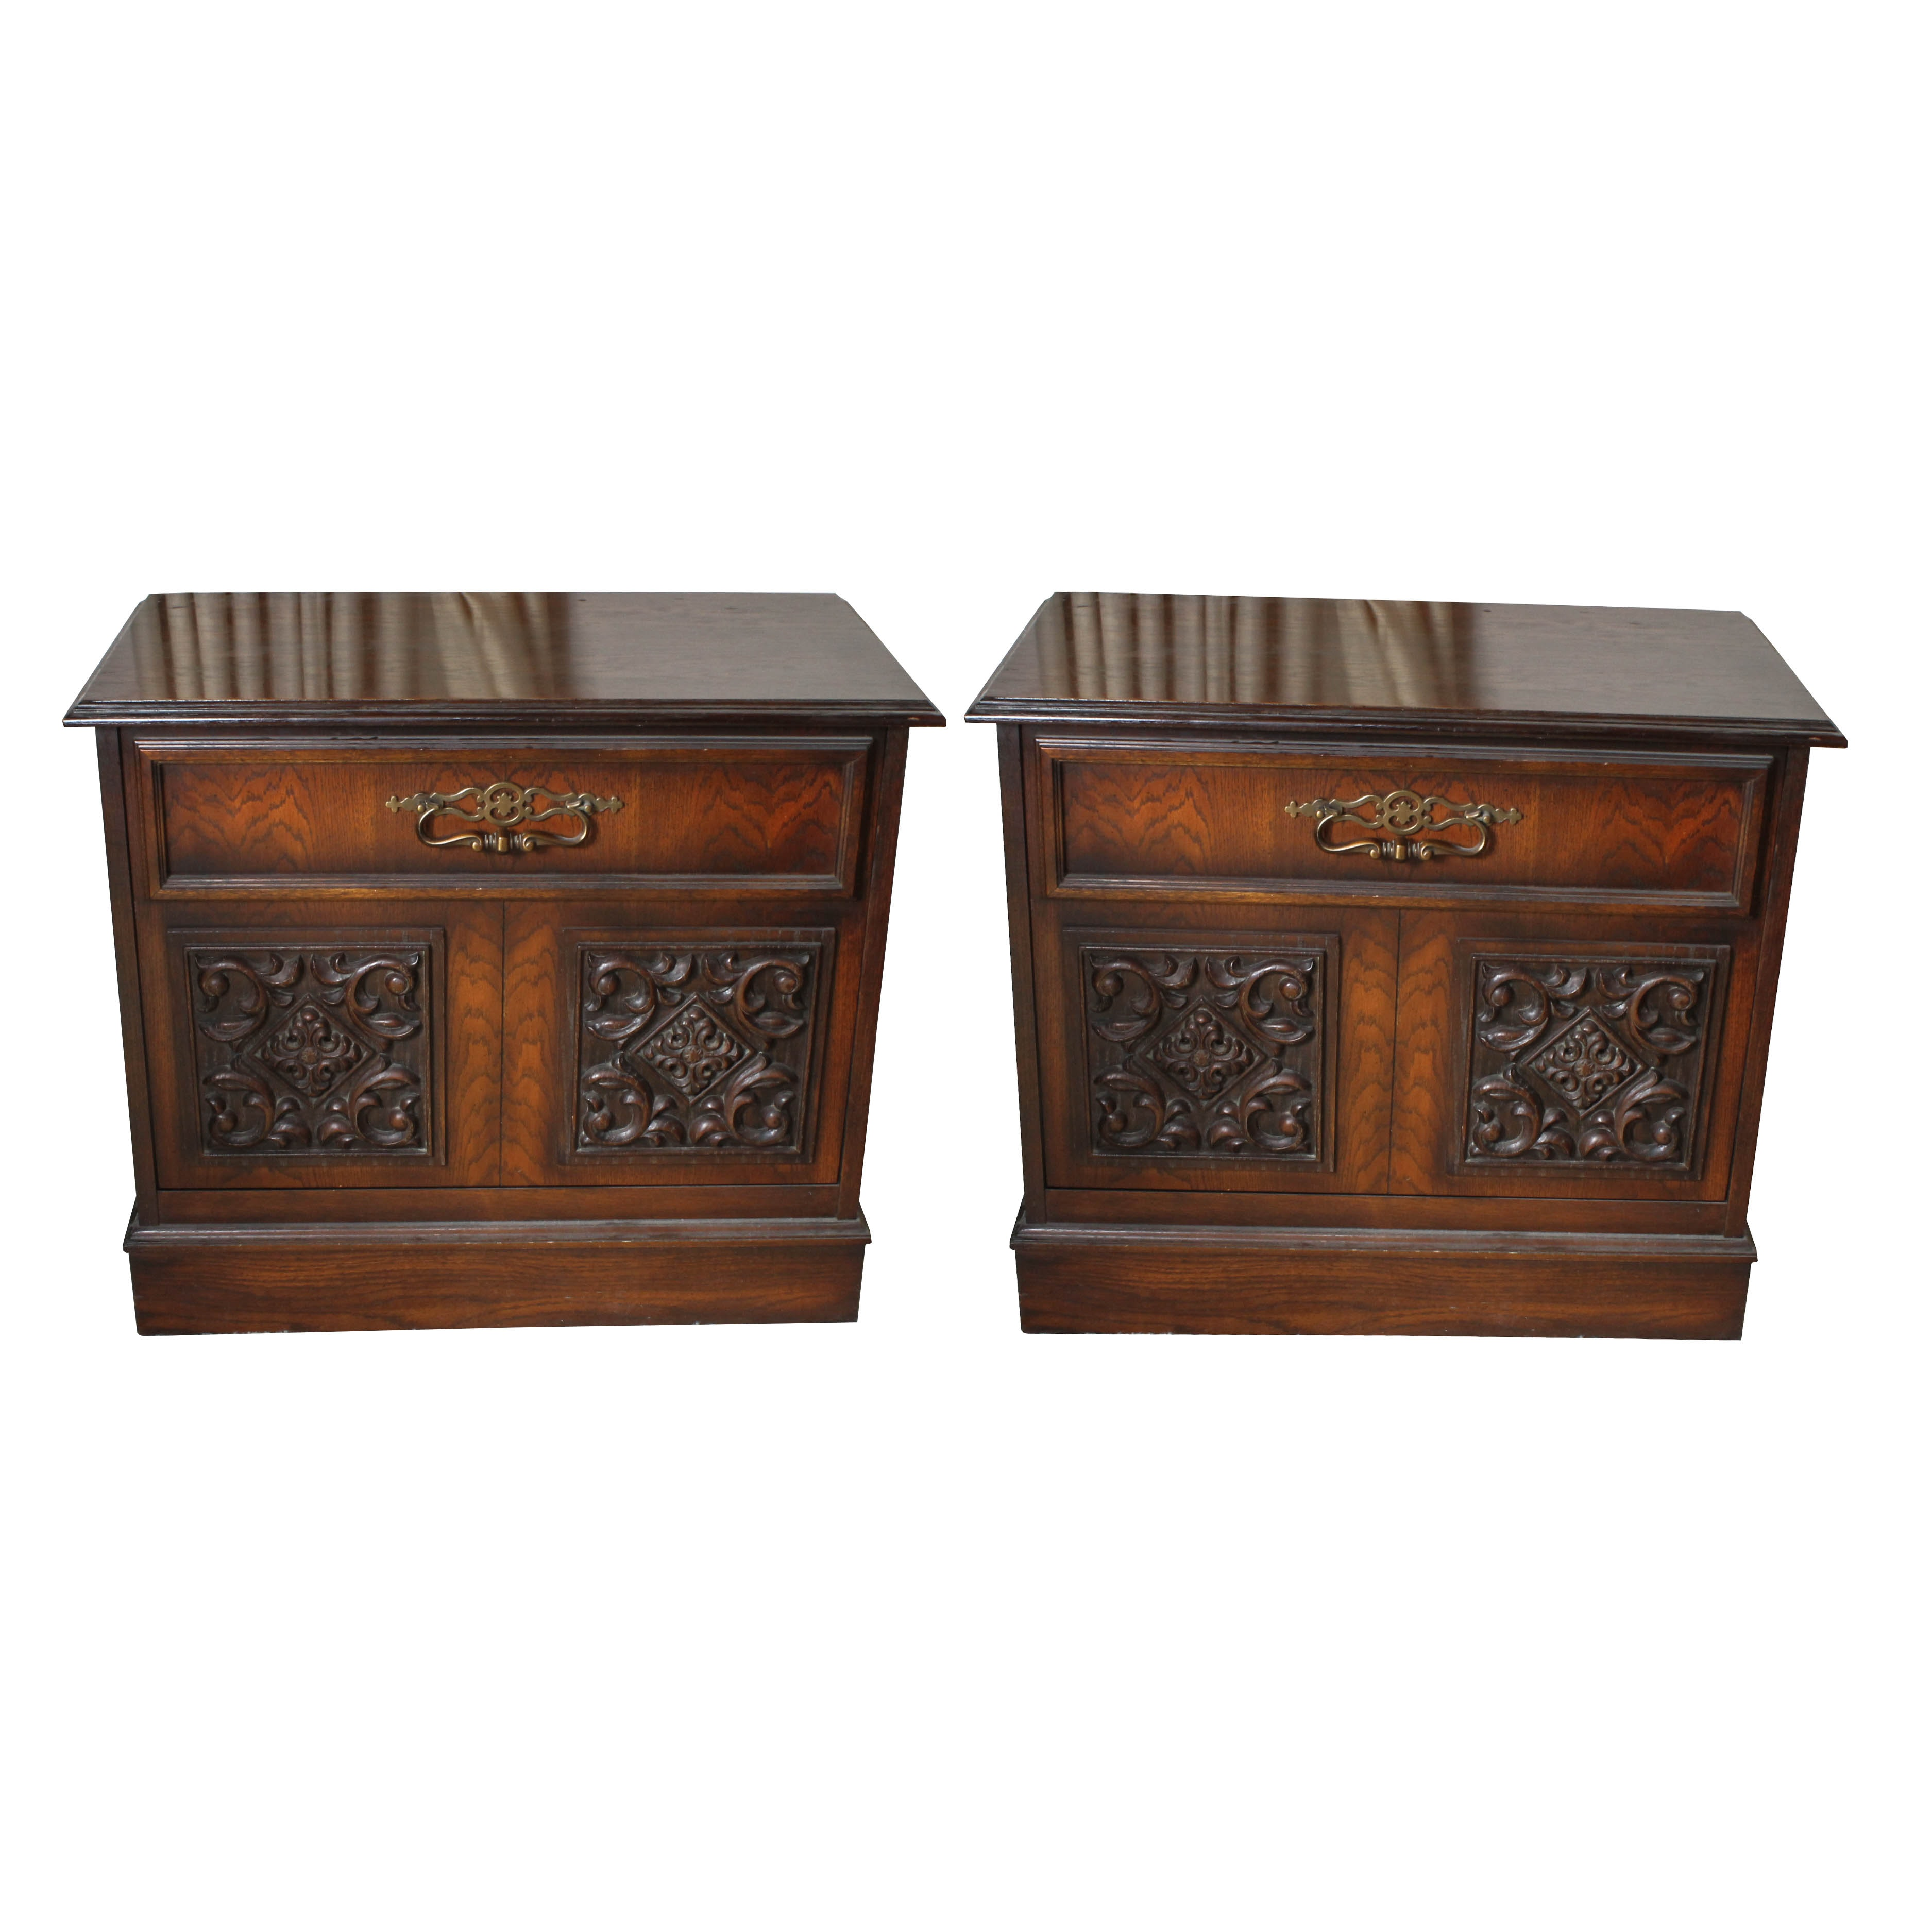 Pair Of Vintage Ornate Side Tables With Record Storage Cabinets ...